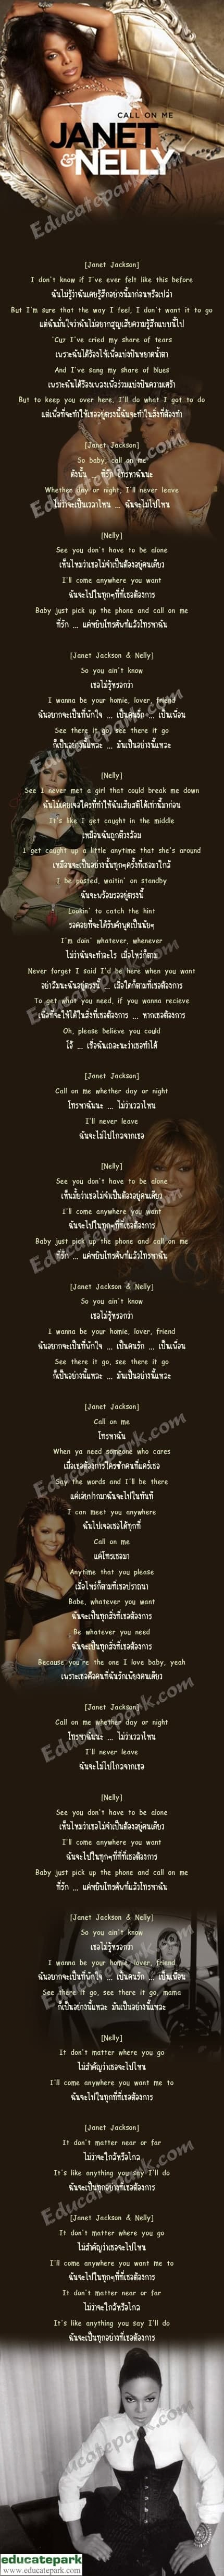 แปลเพลง Call On Me - Janet Jackson Feat. Nelly